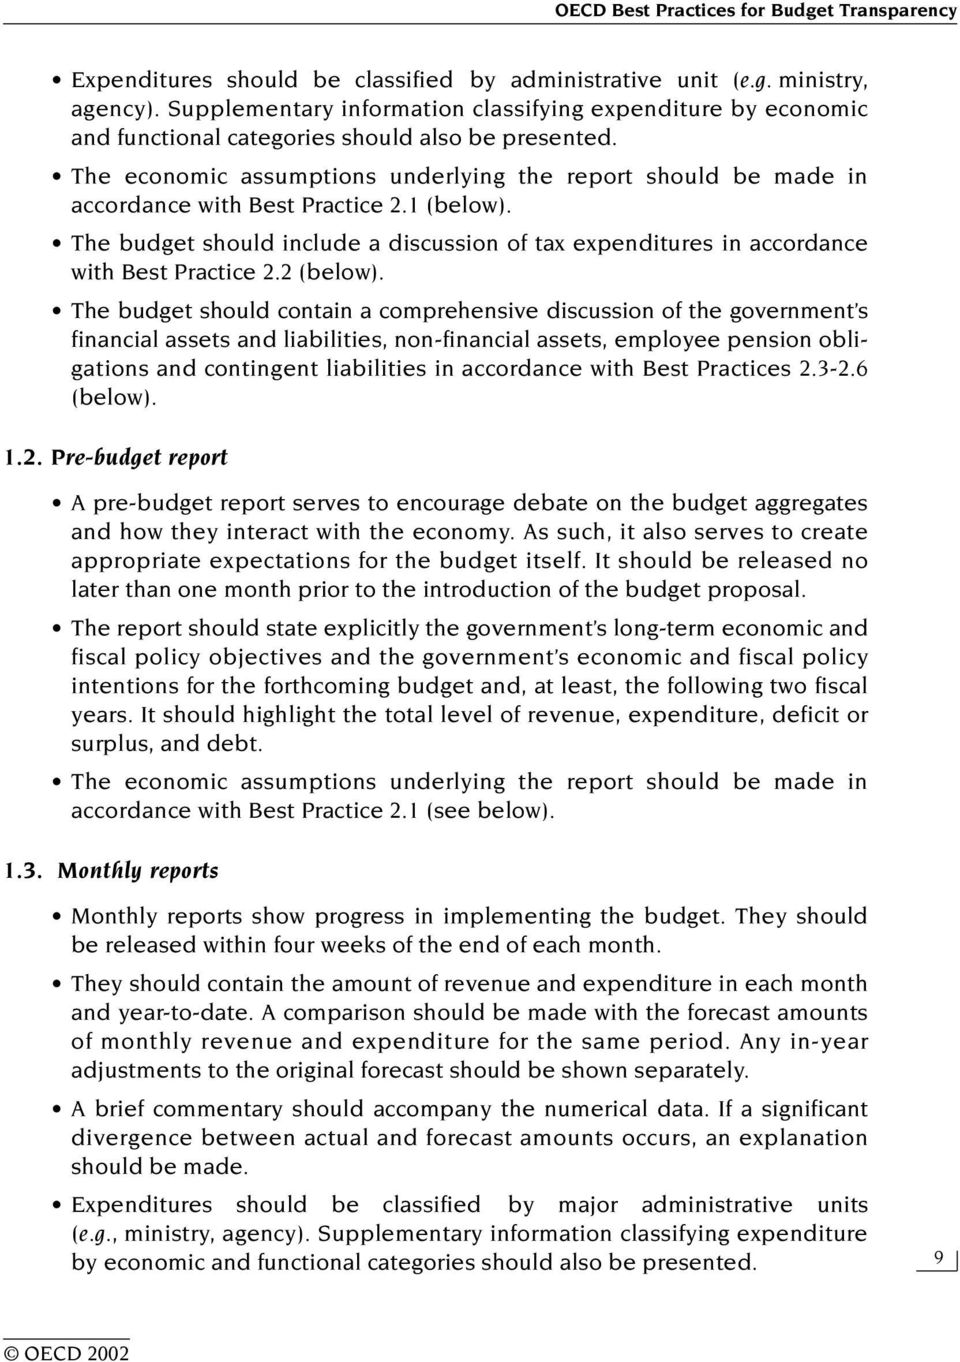 The economic assumptions underlying the report should be made in accordance with Best Practice 2.1 (below).